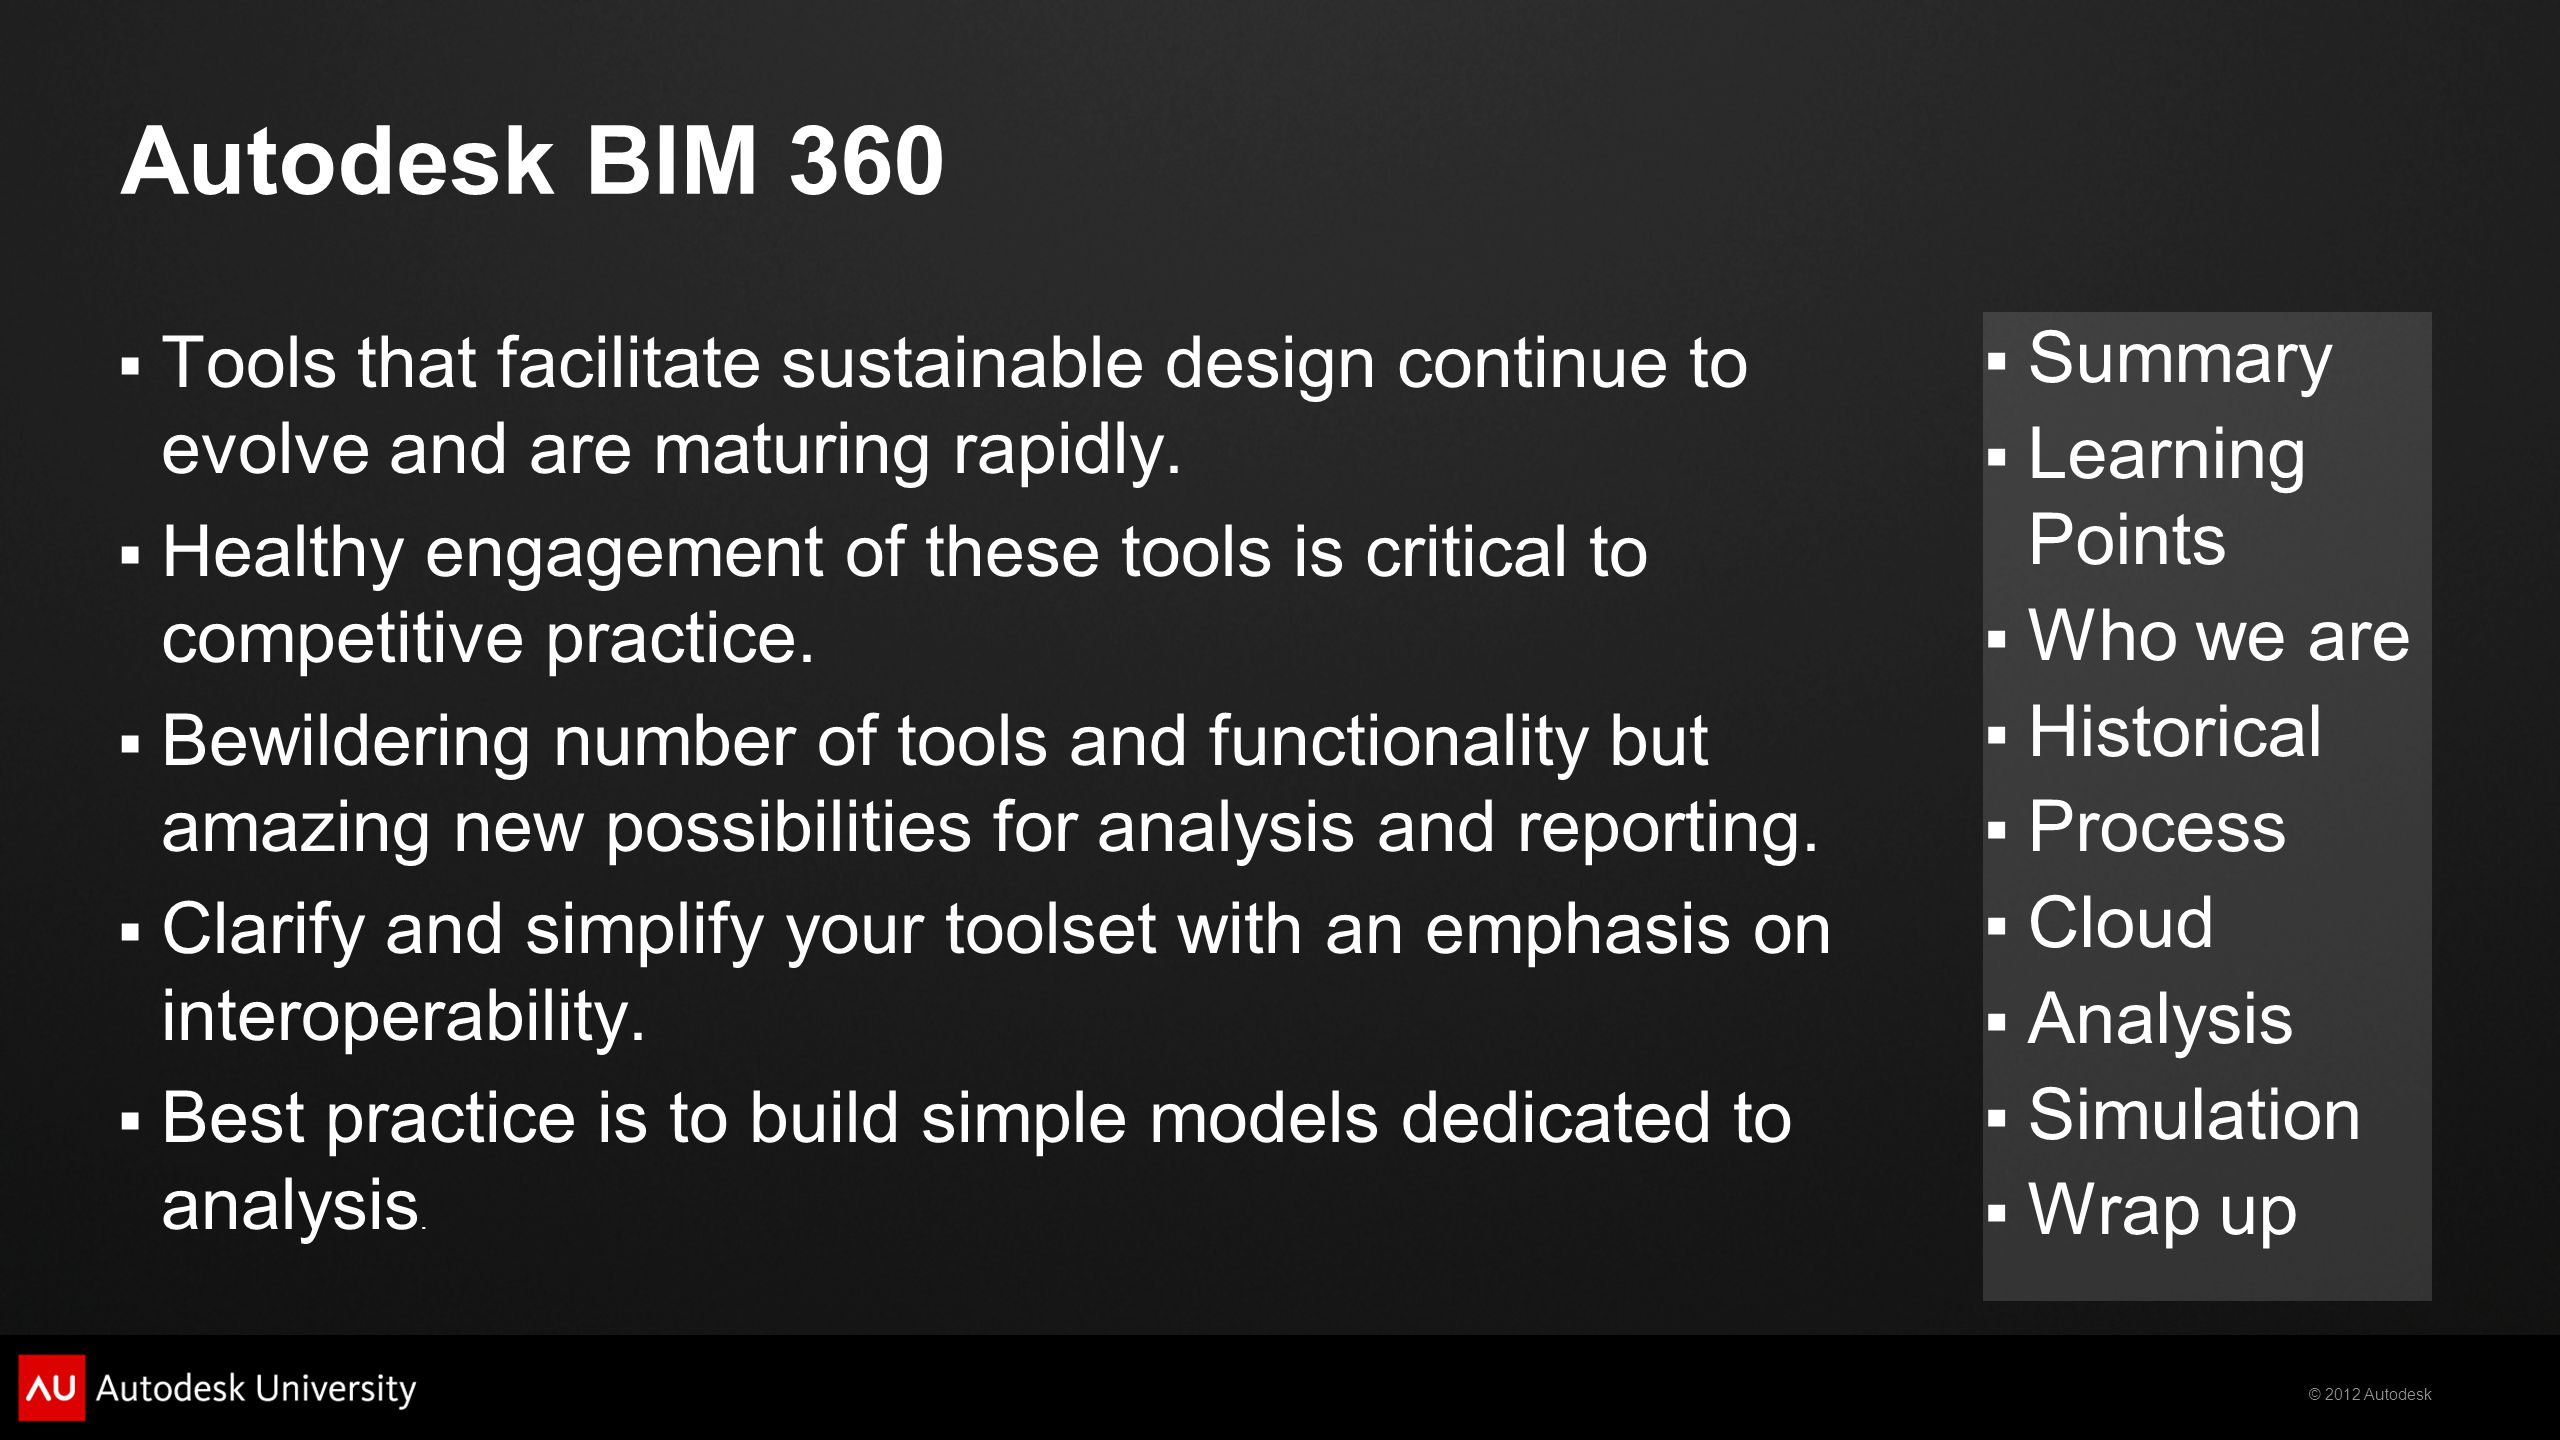 © 2012 Autodesk  Summary  Learning Points  Who we are  Historical  Process  Cloud  Analysis  Simulation  Wrap up Autodesk BIM 360  Tools tha